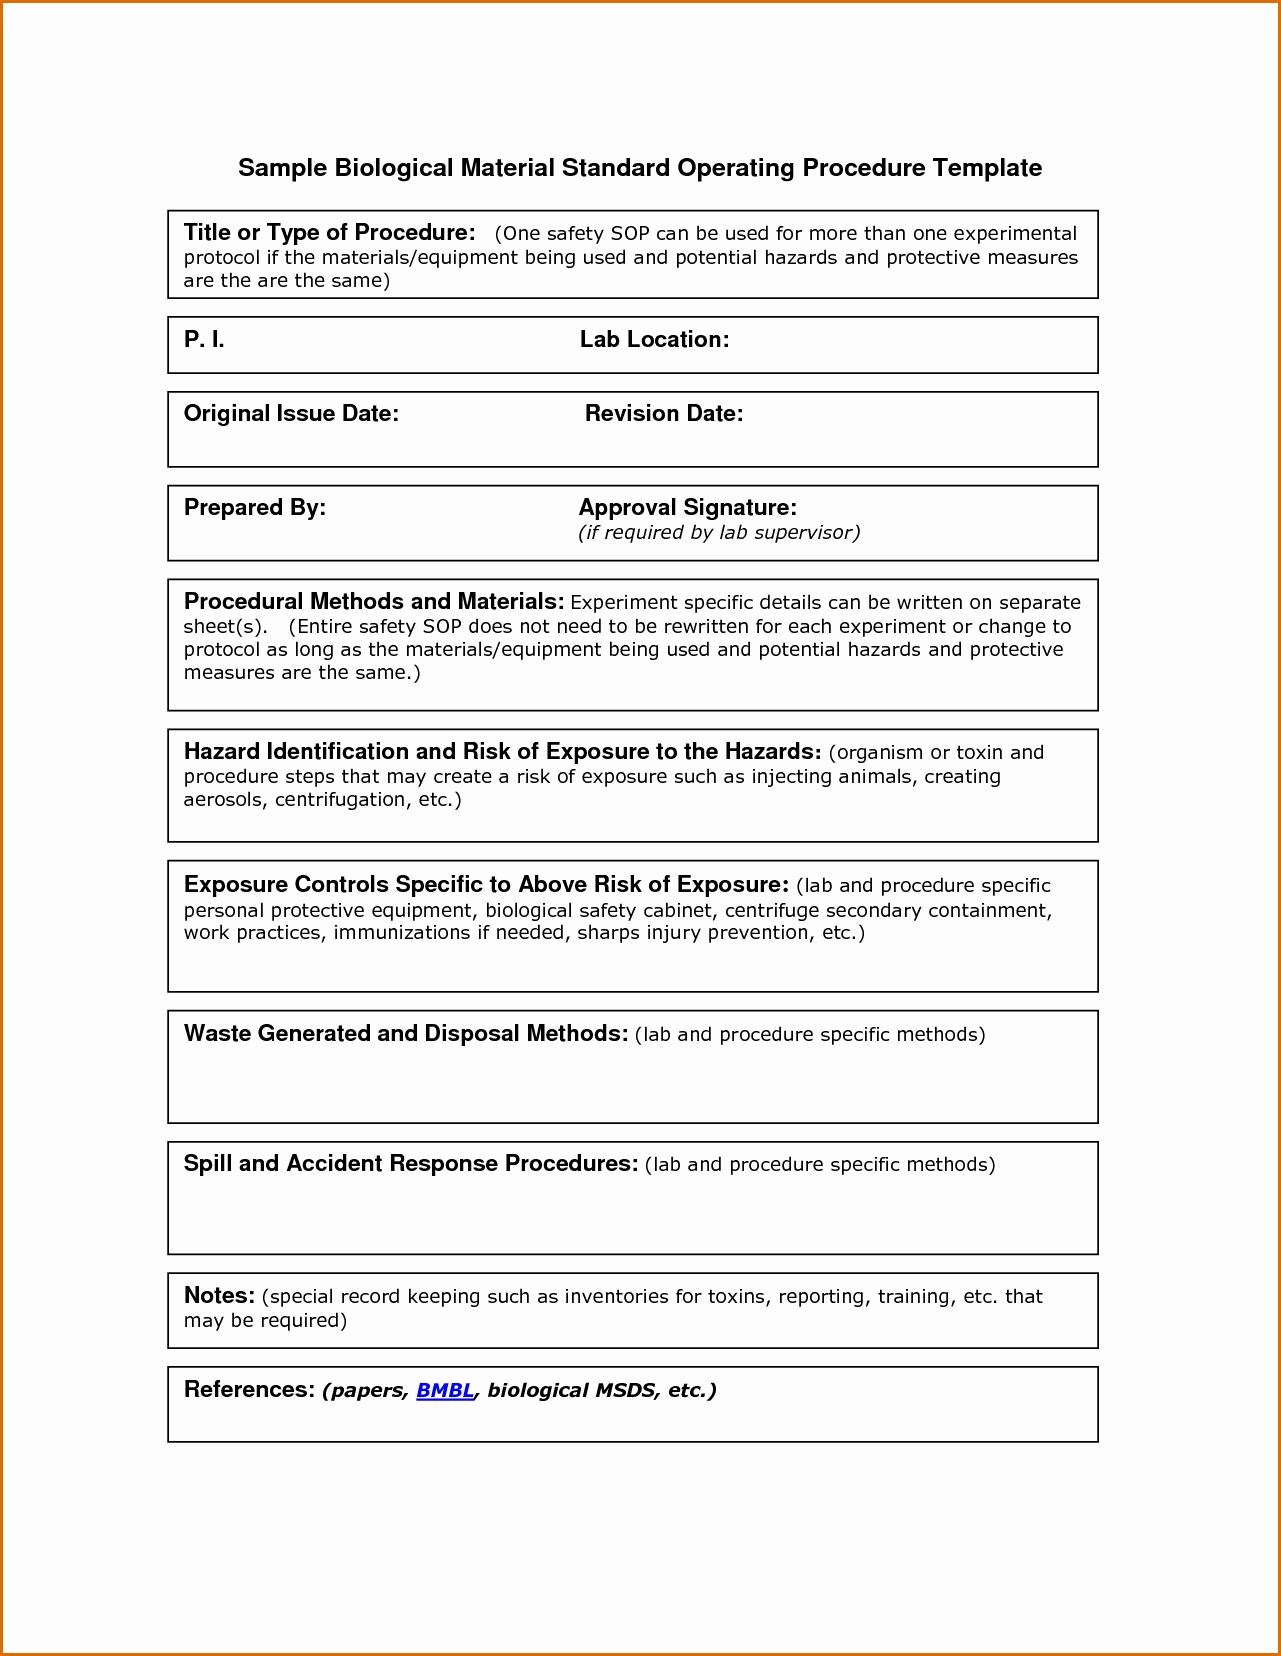 Standard Operating Procedures Template Awesome 13 Standard Operating Procedures Examples